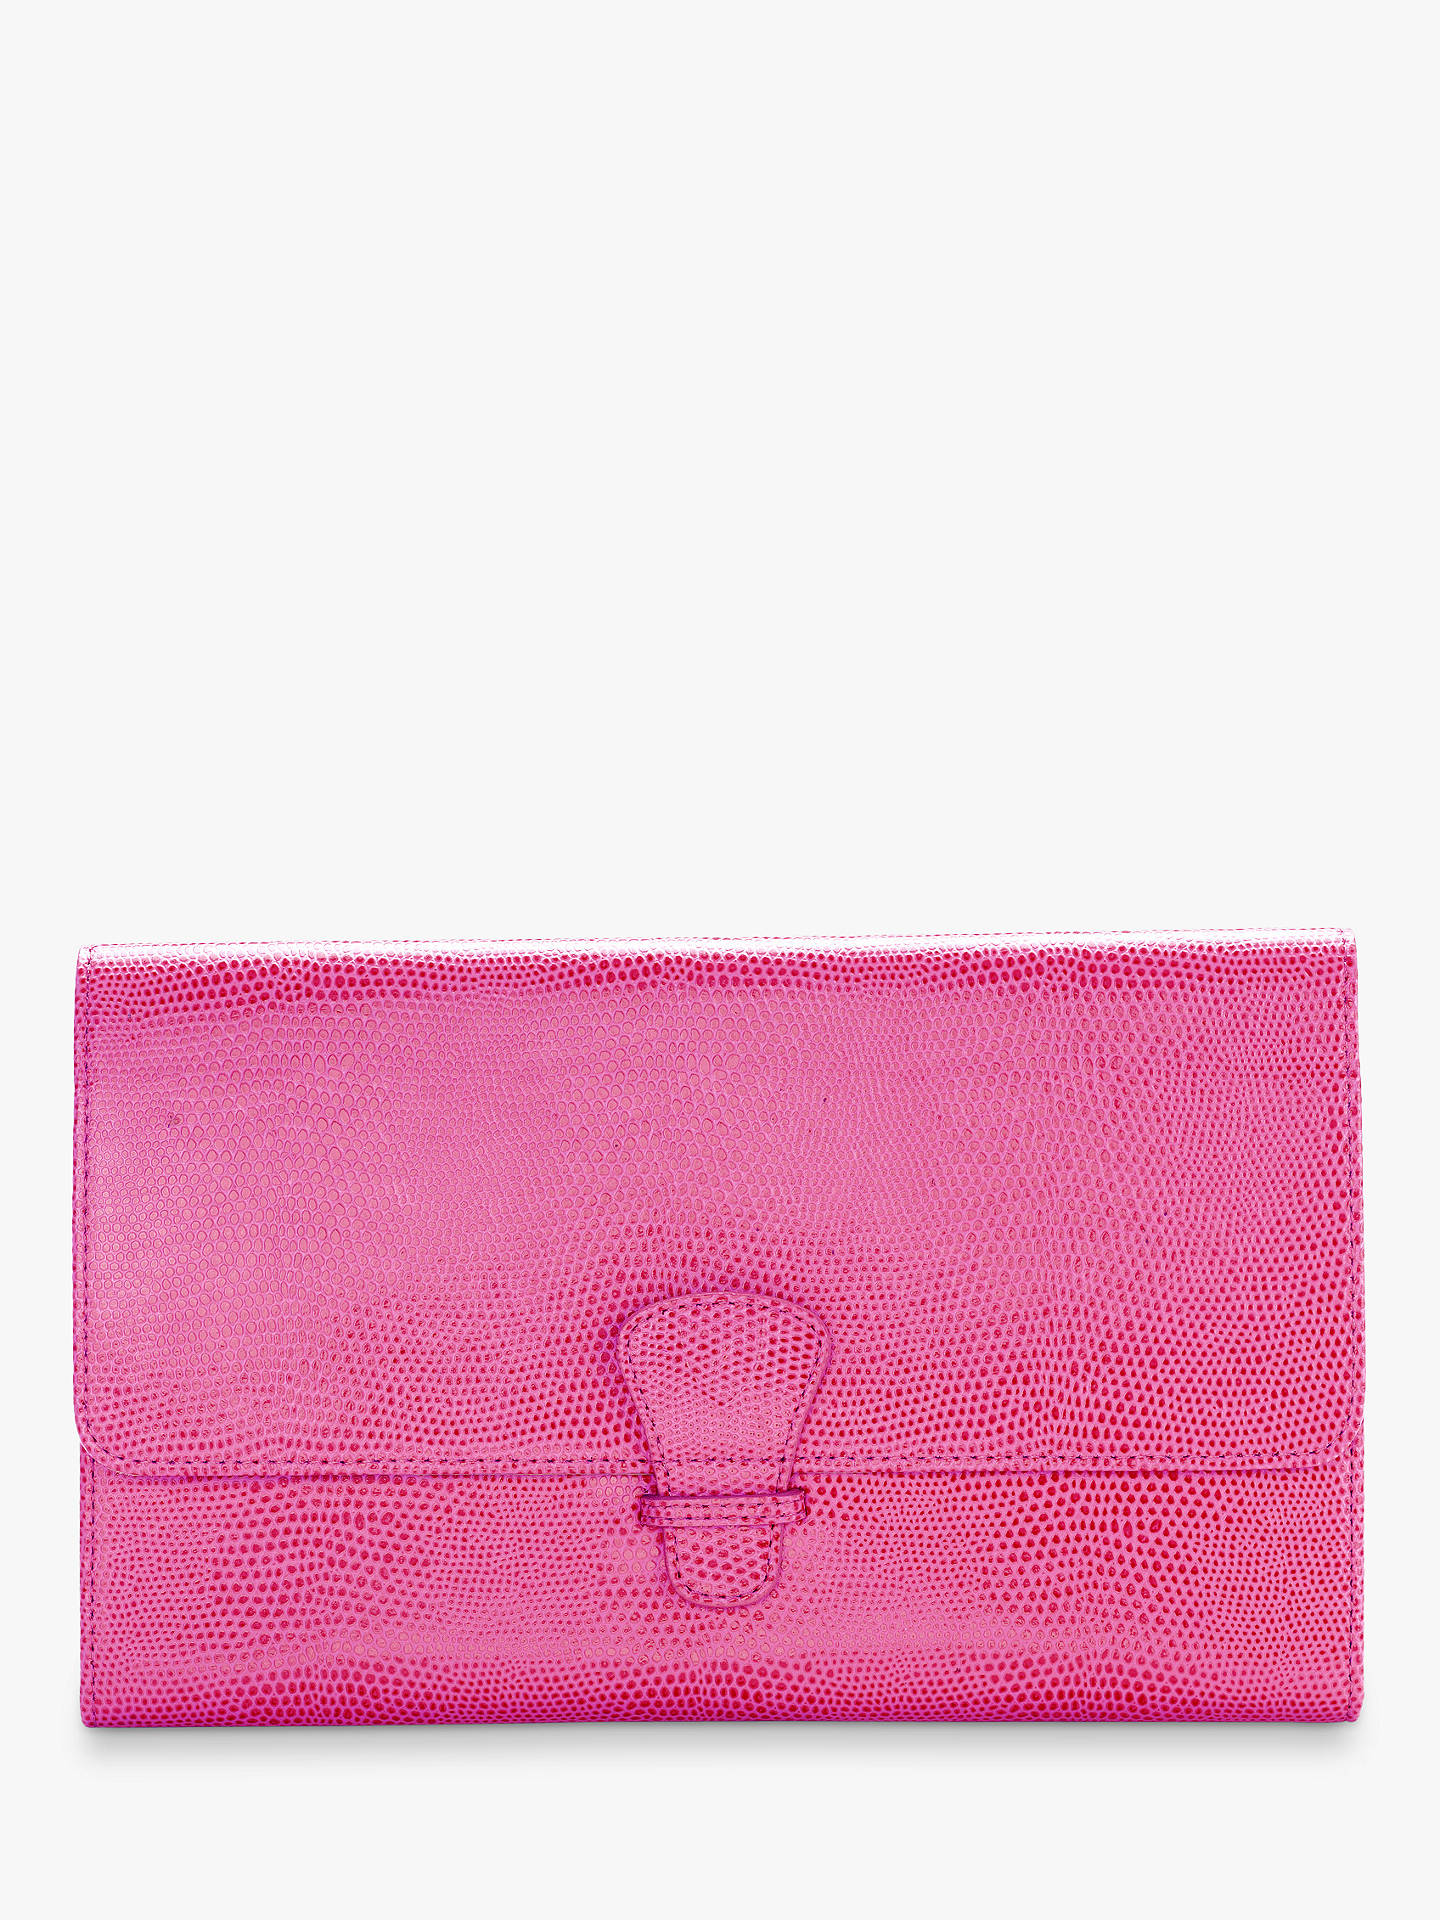 Buy Aspinal of London Classic Leather Travel Wallet, Raspberry Online at johnlewis.com